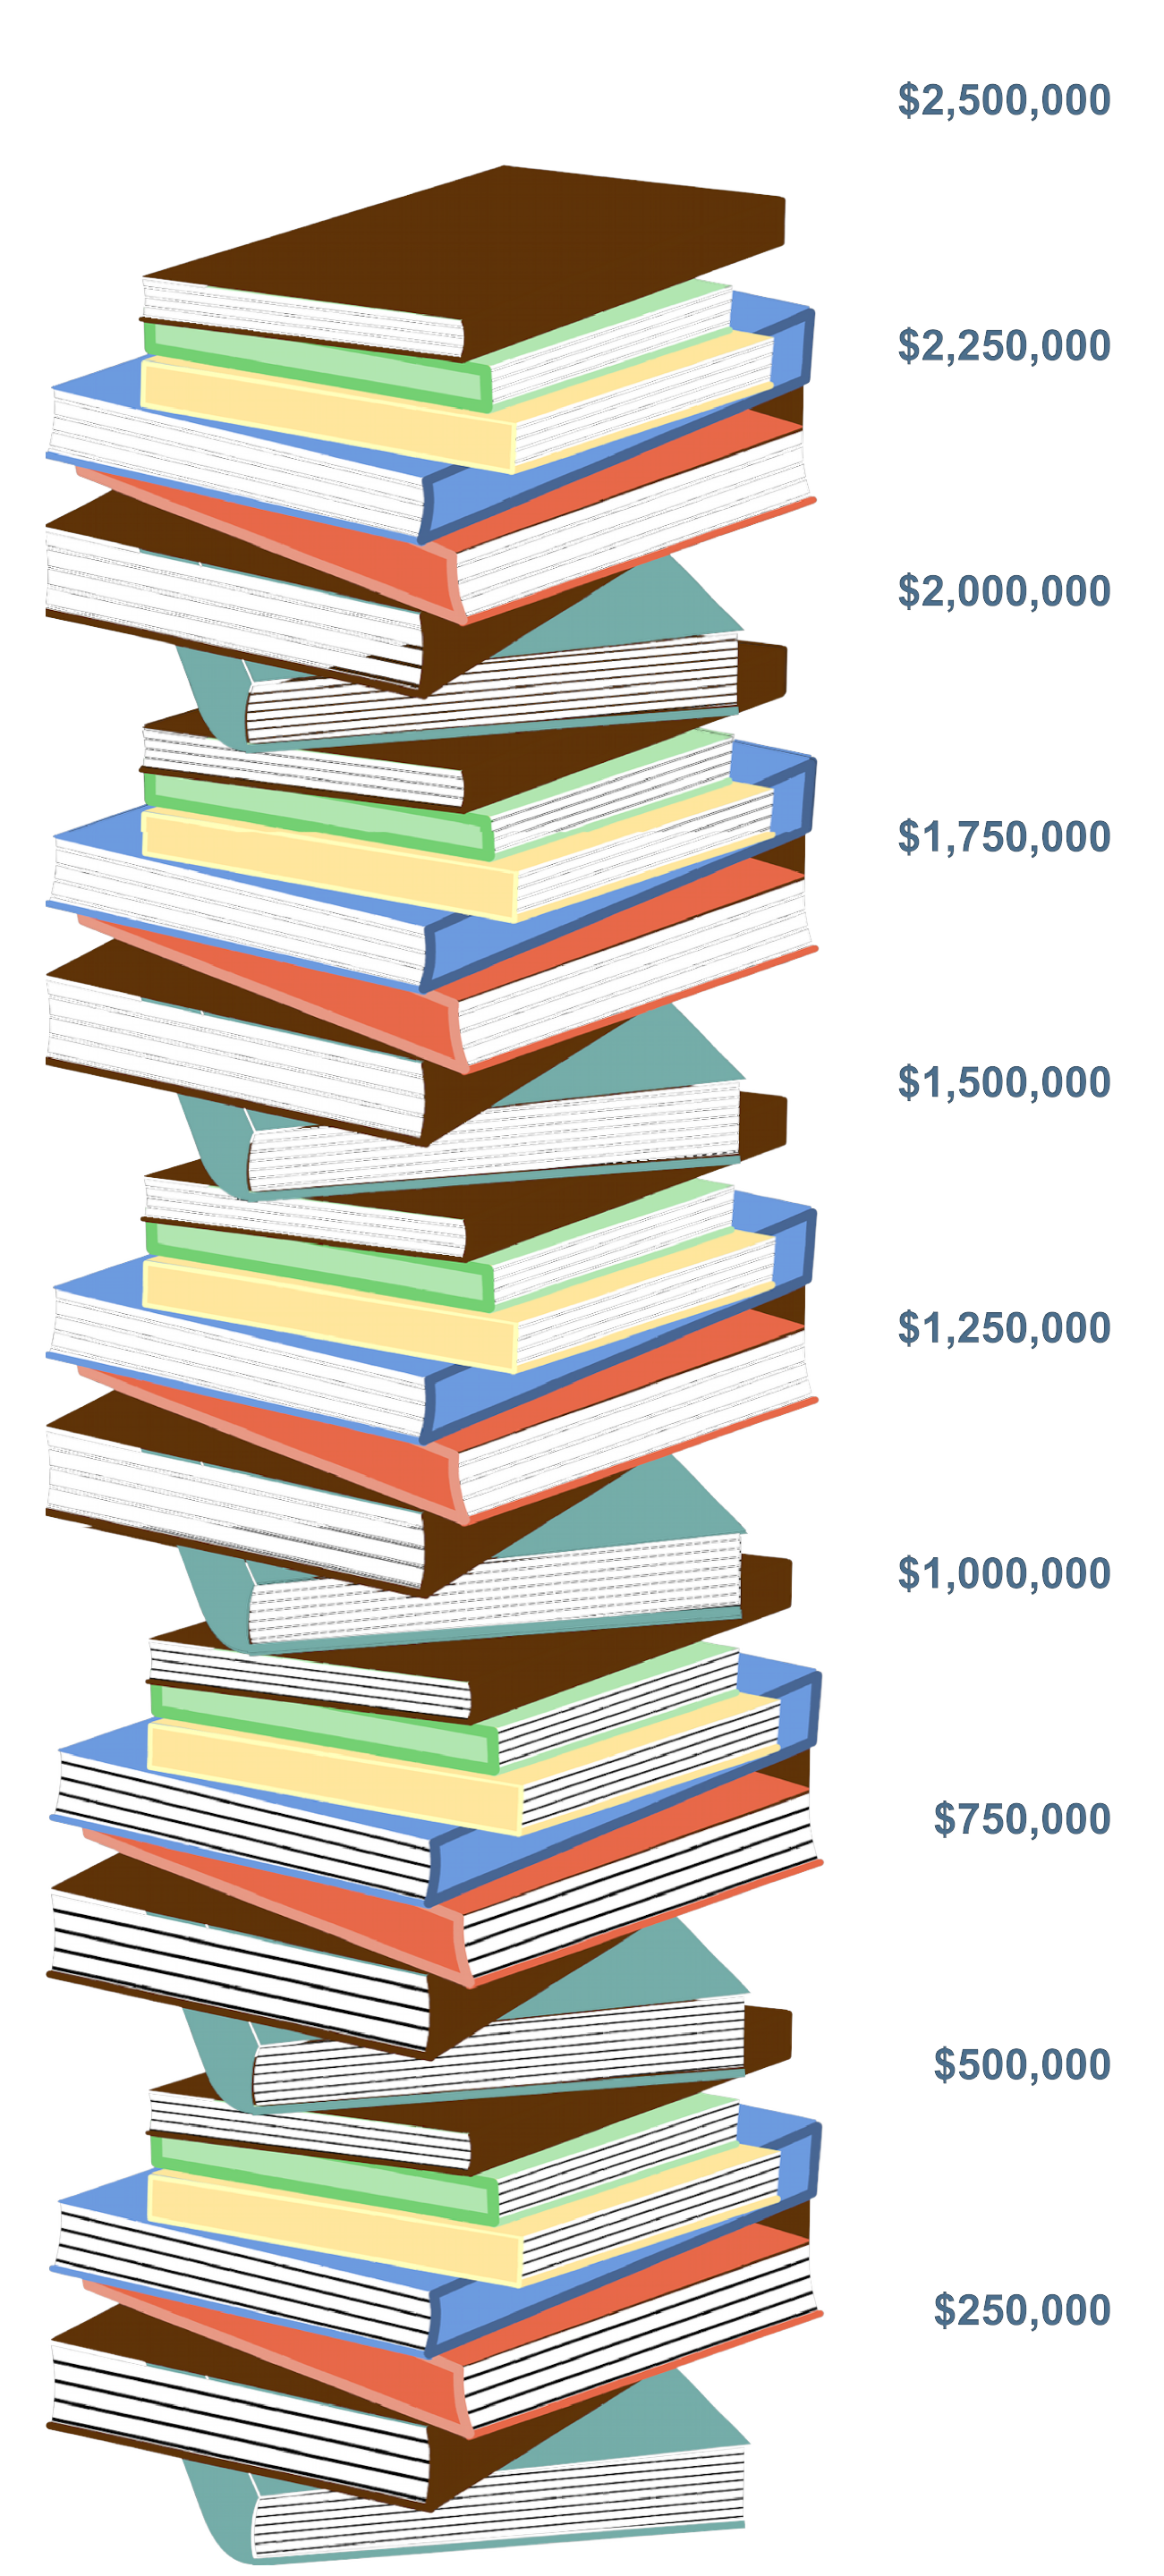 Book stack image showing $2,415,000 raised so far